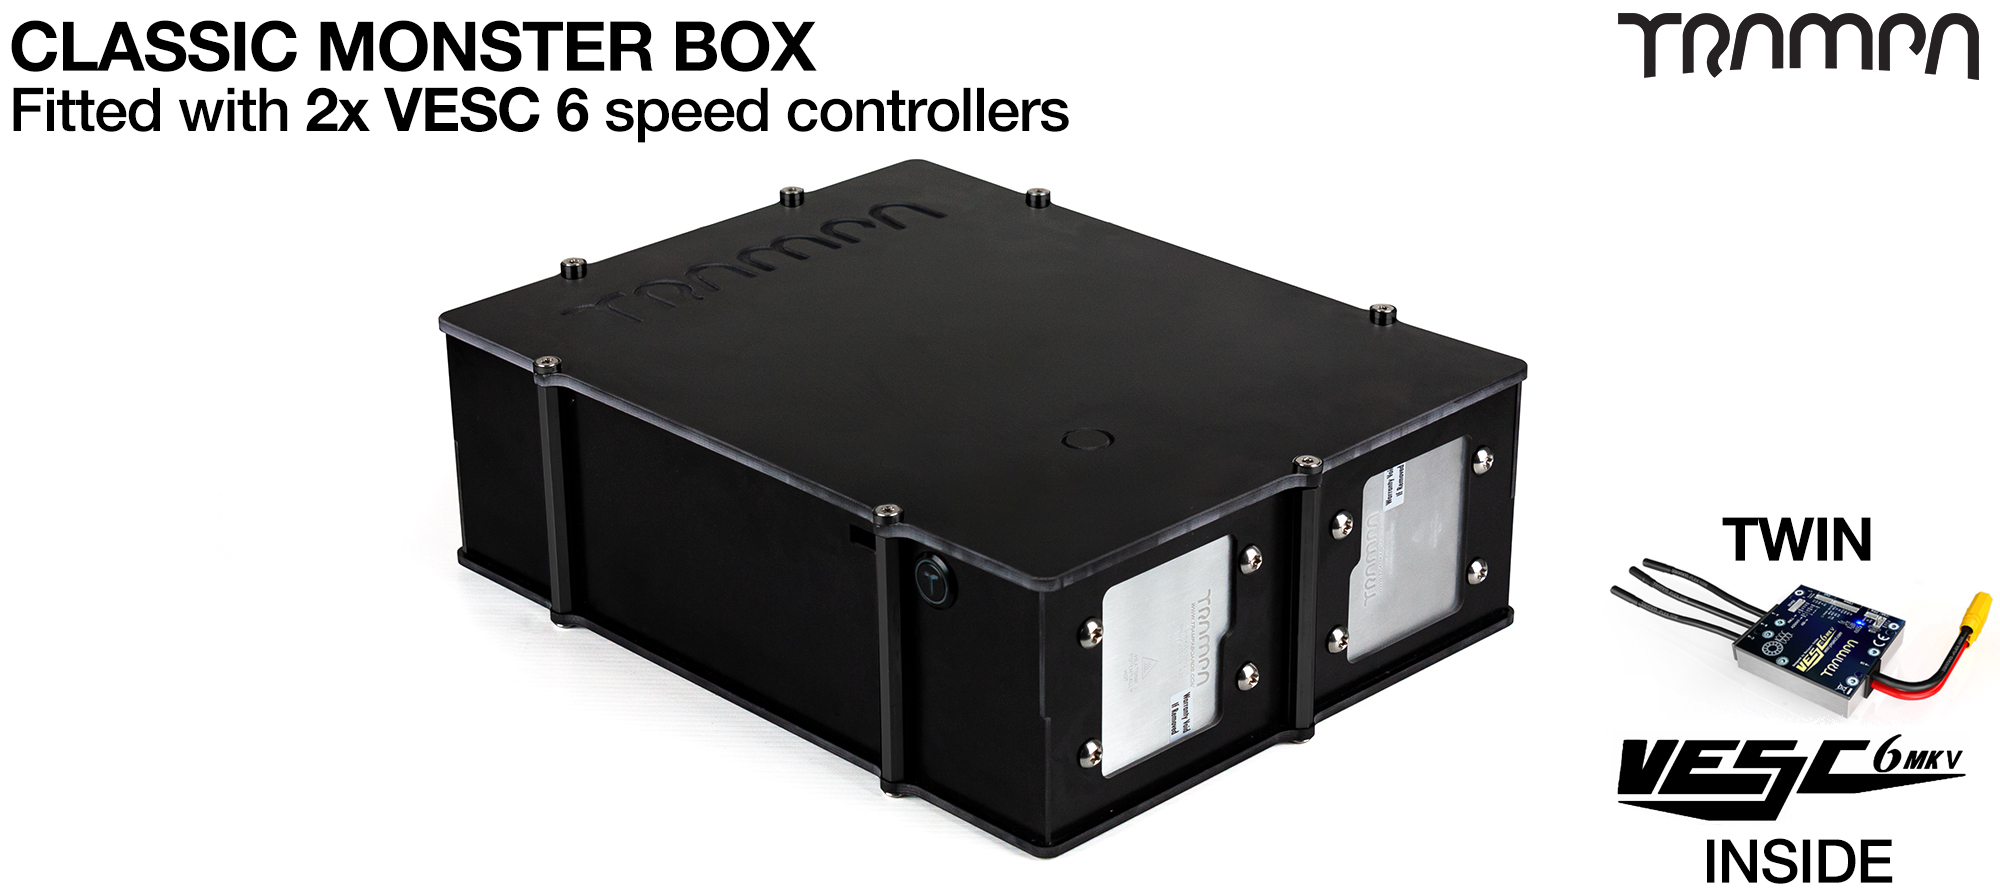 MASSIVE MONSTER Box with 2x VESC 6 & 21700 Cell pack - WITH CELLS UK Customers only (+£300)